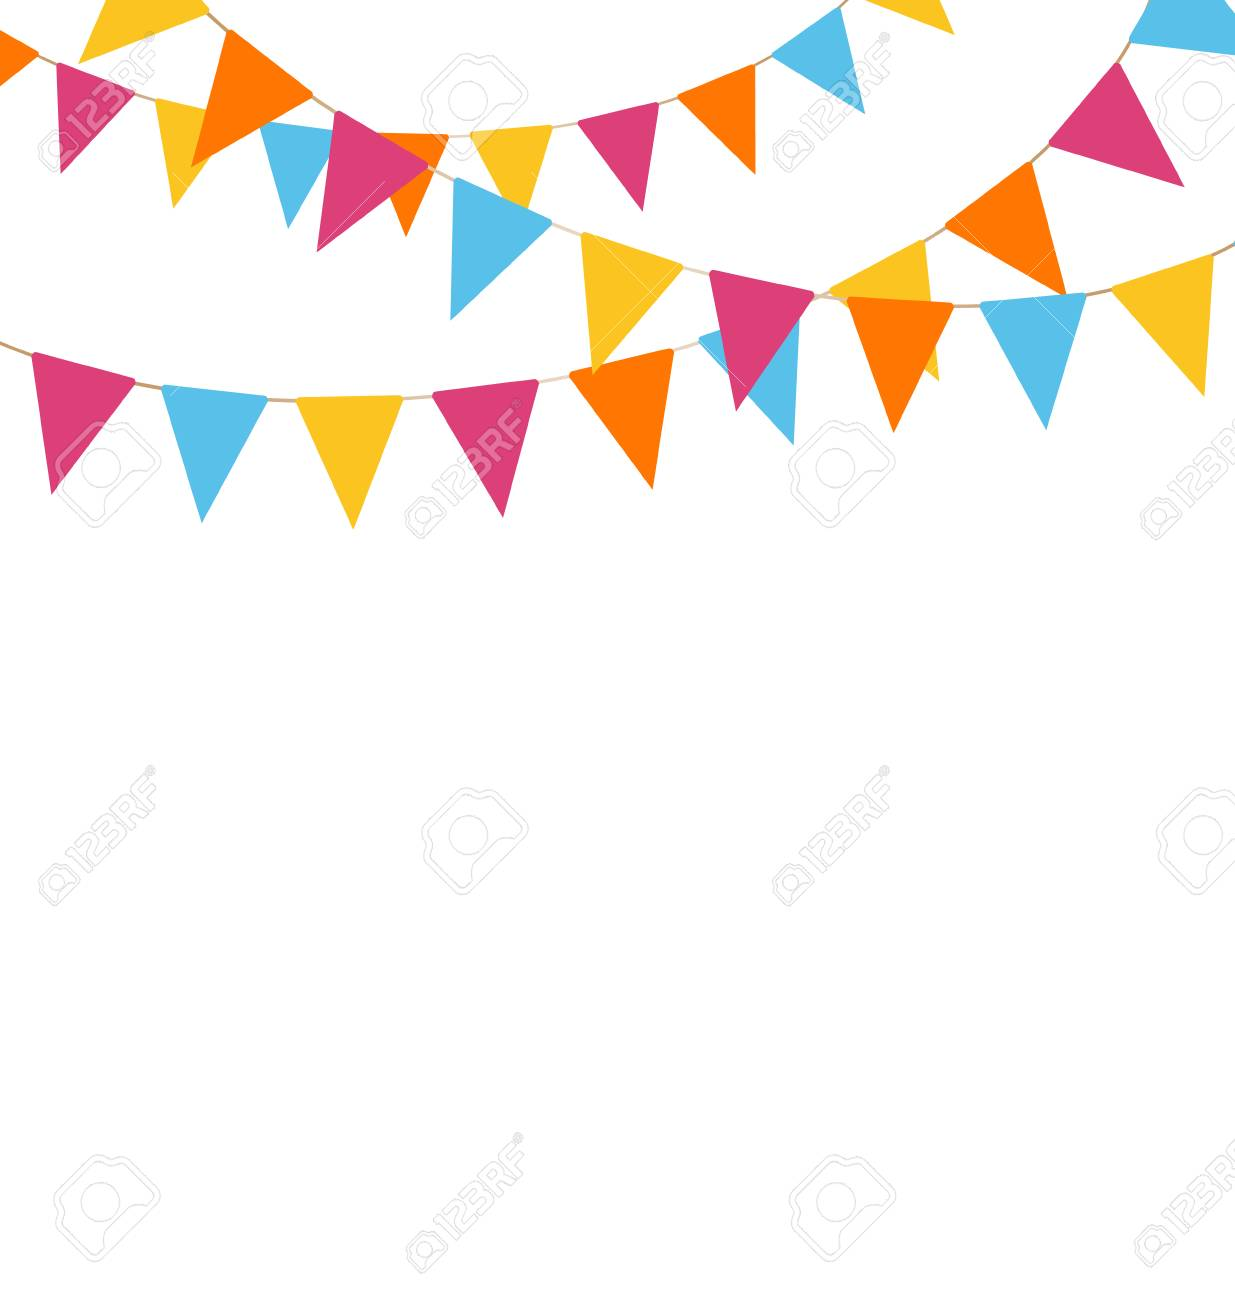 Multicolored bright buntings garlands isolated on white background - 33955319